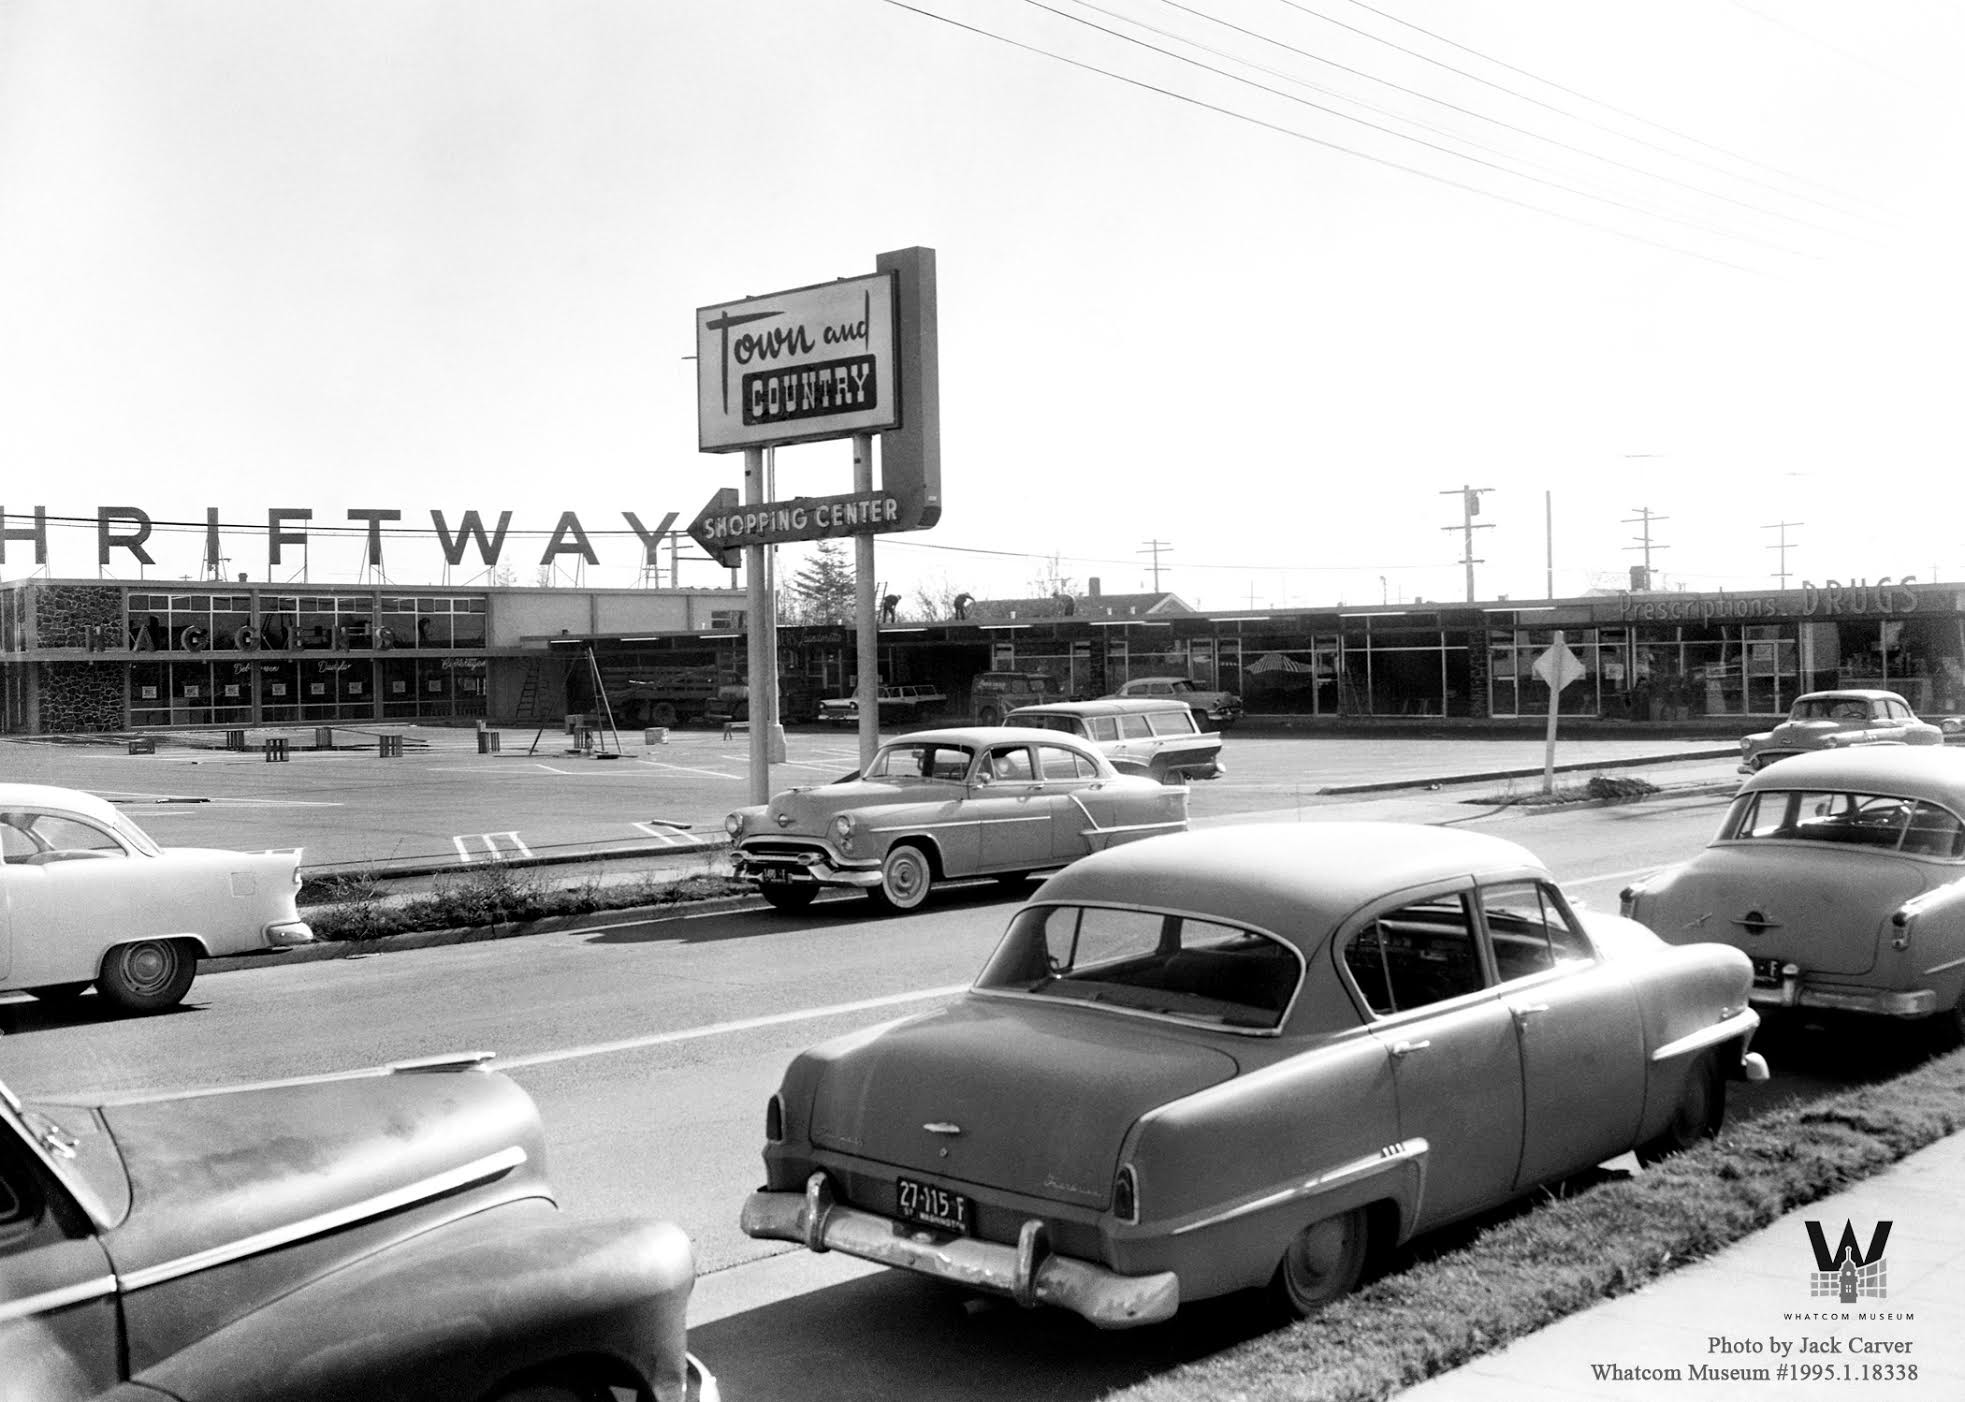 black and white image of shopping center with cars in the foreground